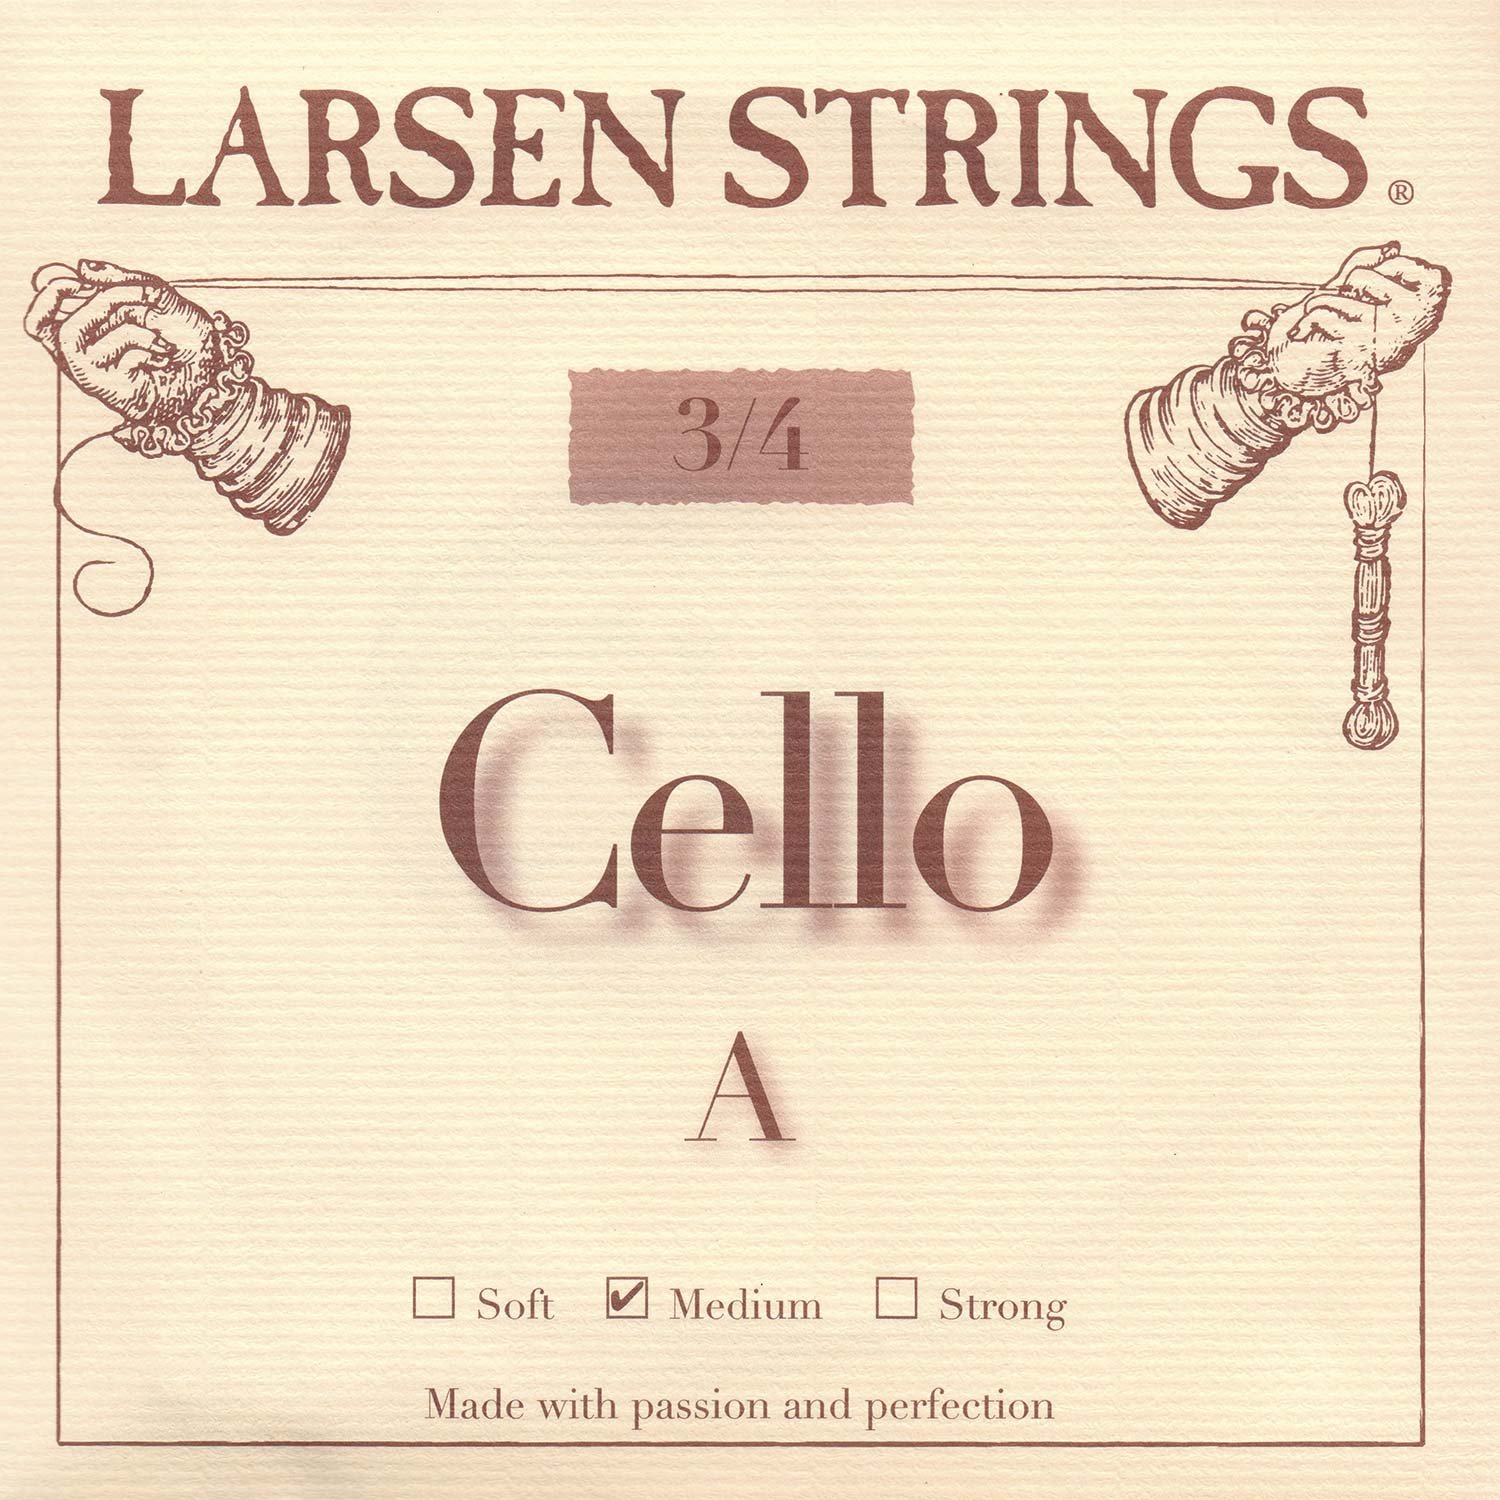 Larsen 3/4 Cello A String Medium Alloy-Steel